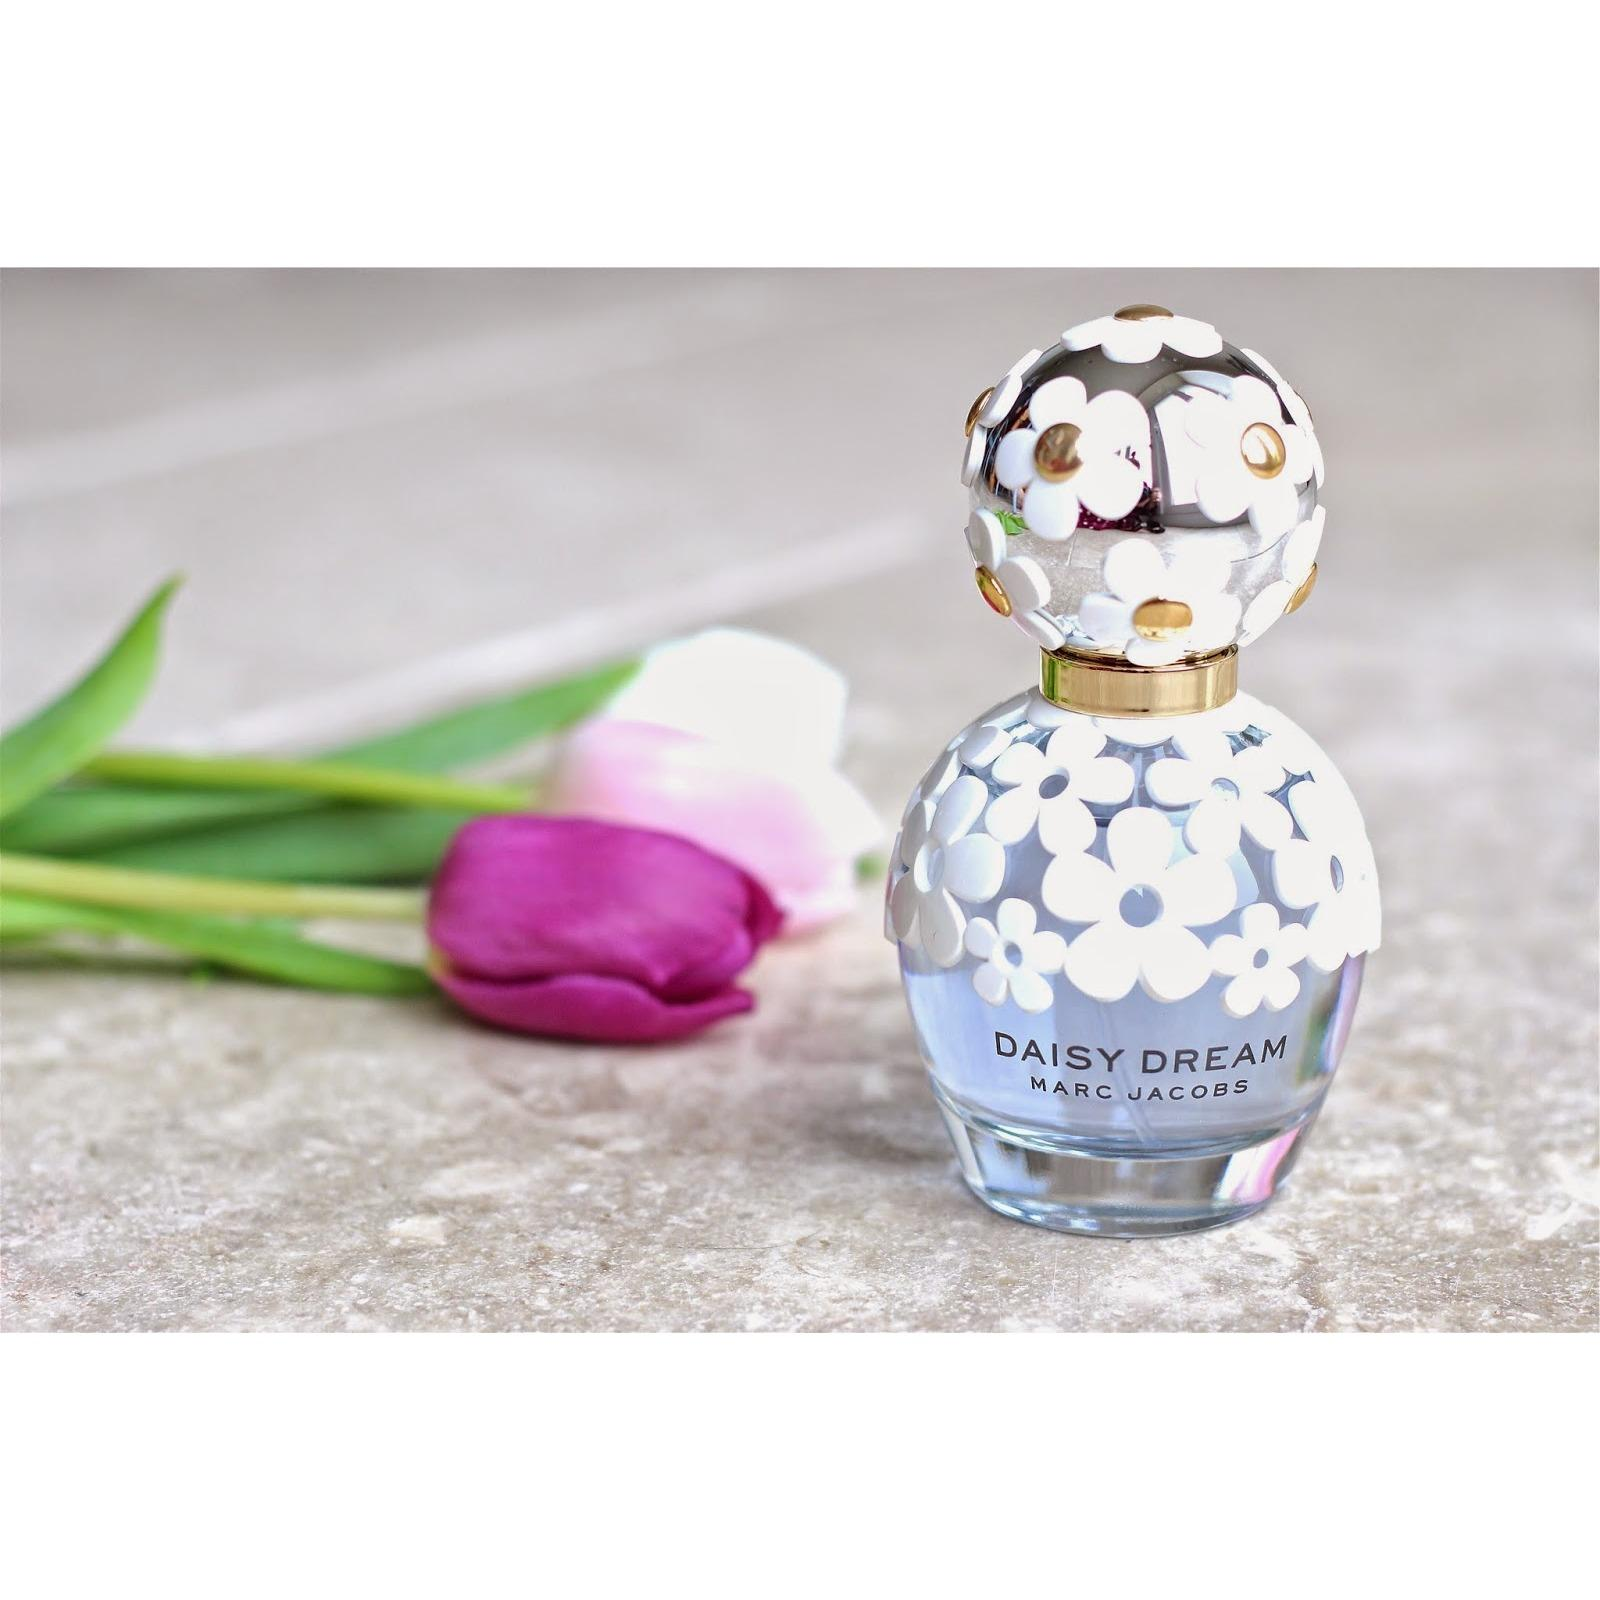 Daisy flower perfume page 3 best ladies fragrance beautysouthafrica fragrance fragrance notes floral source marc jacobs daisy dream 100ml women izmirmasajfo Image collections